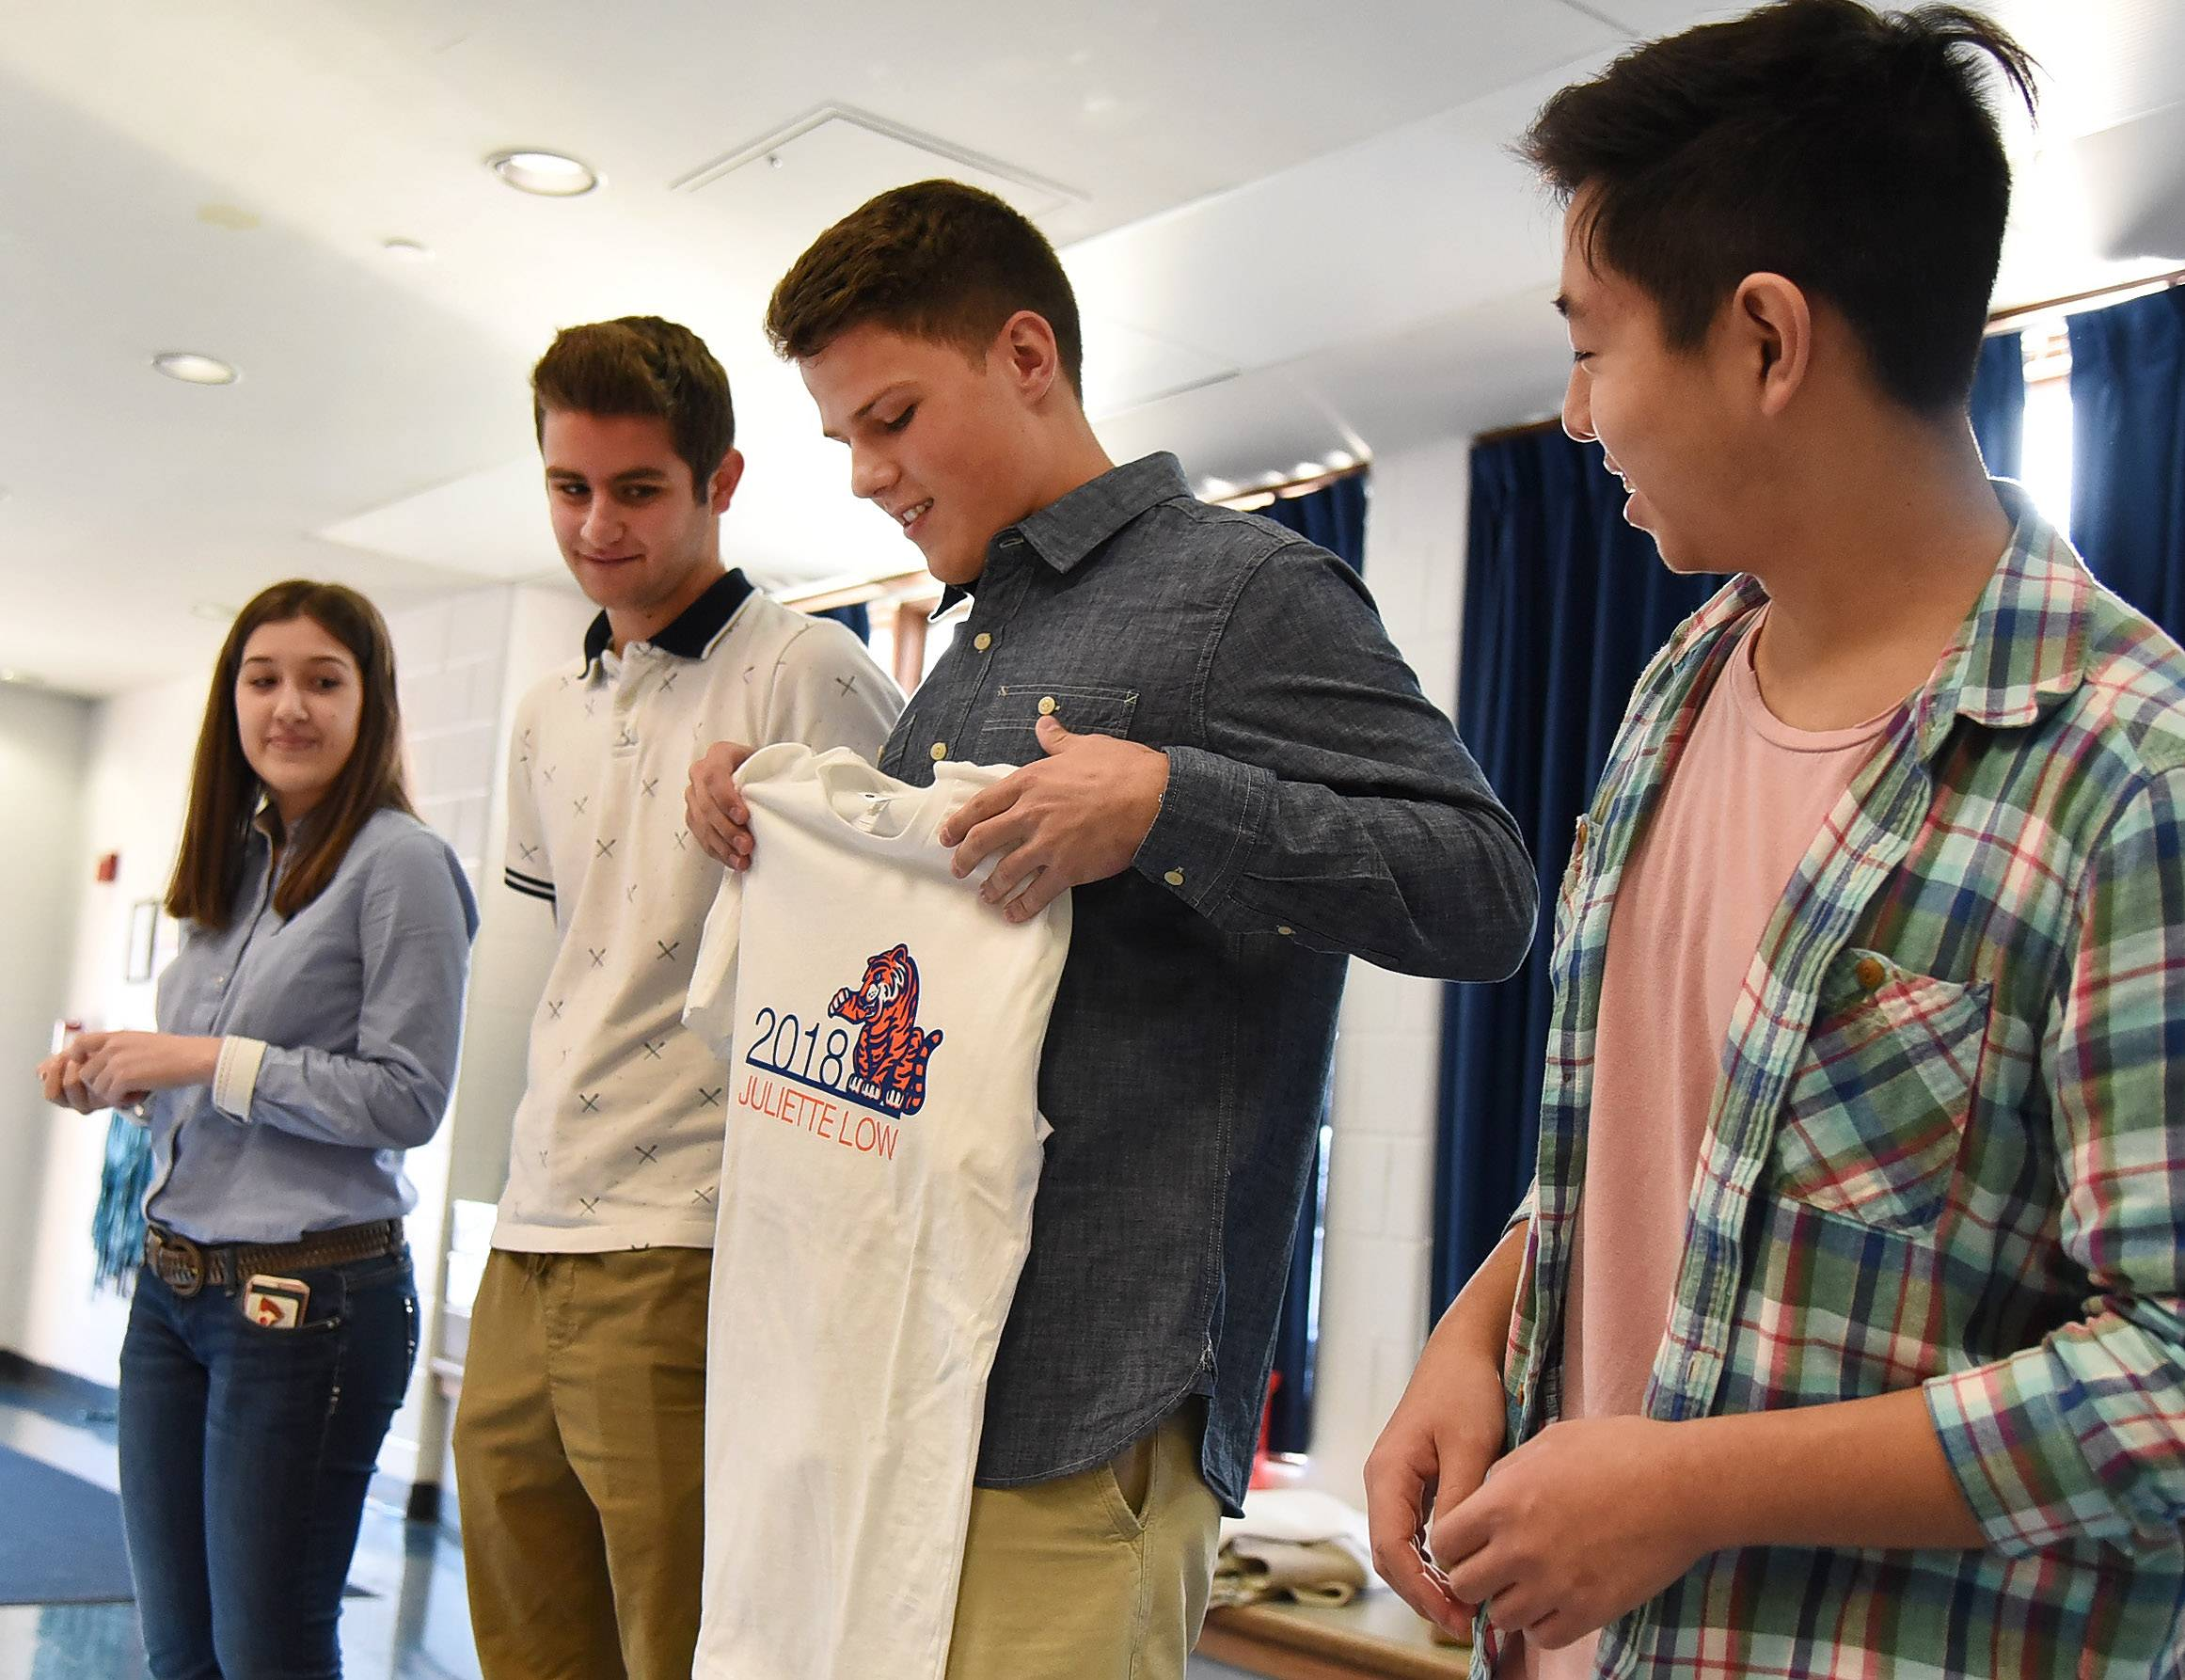 Rolling Meadows graphic design students, from left, Noel Manushi, Thomas Luedloff, Matt Lothery and Raymond Liu hold up one of the T-shirts they designed for the fifth-graders at Juliette Low School in Arlington Heights.